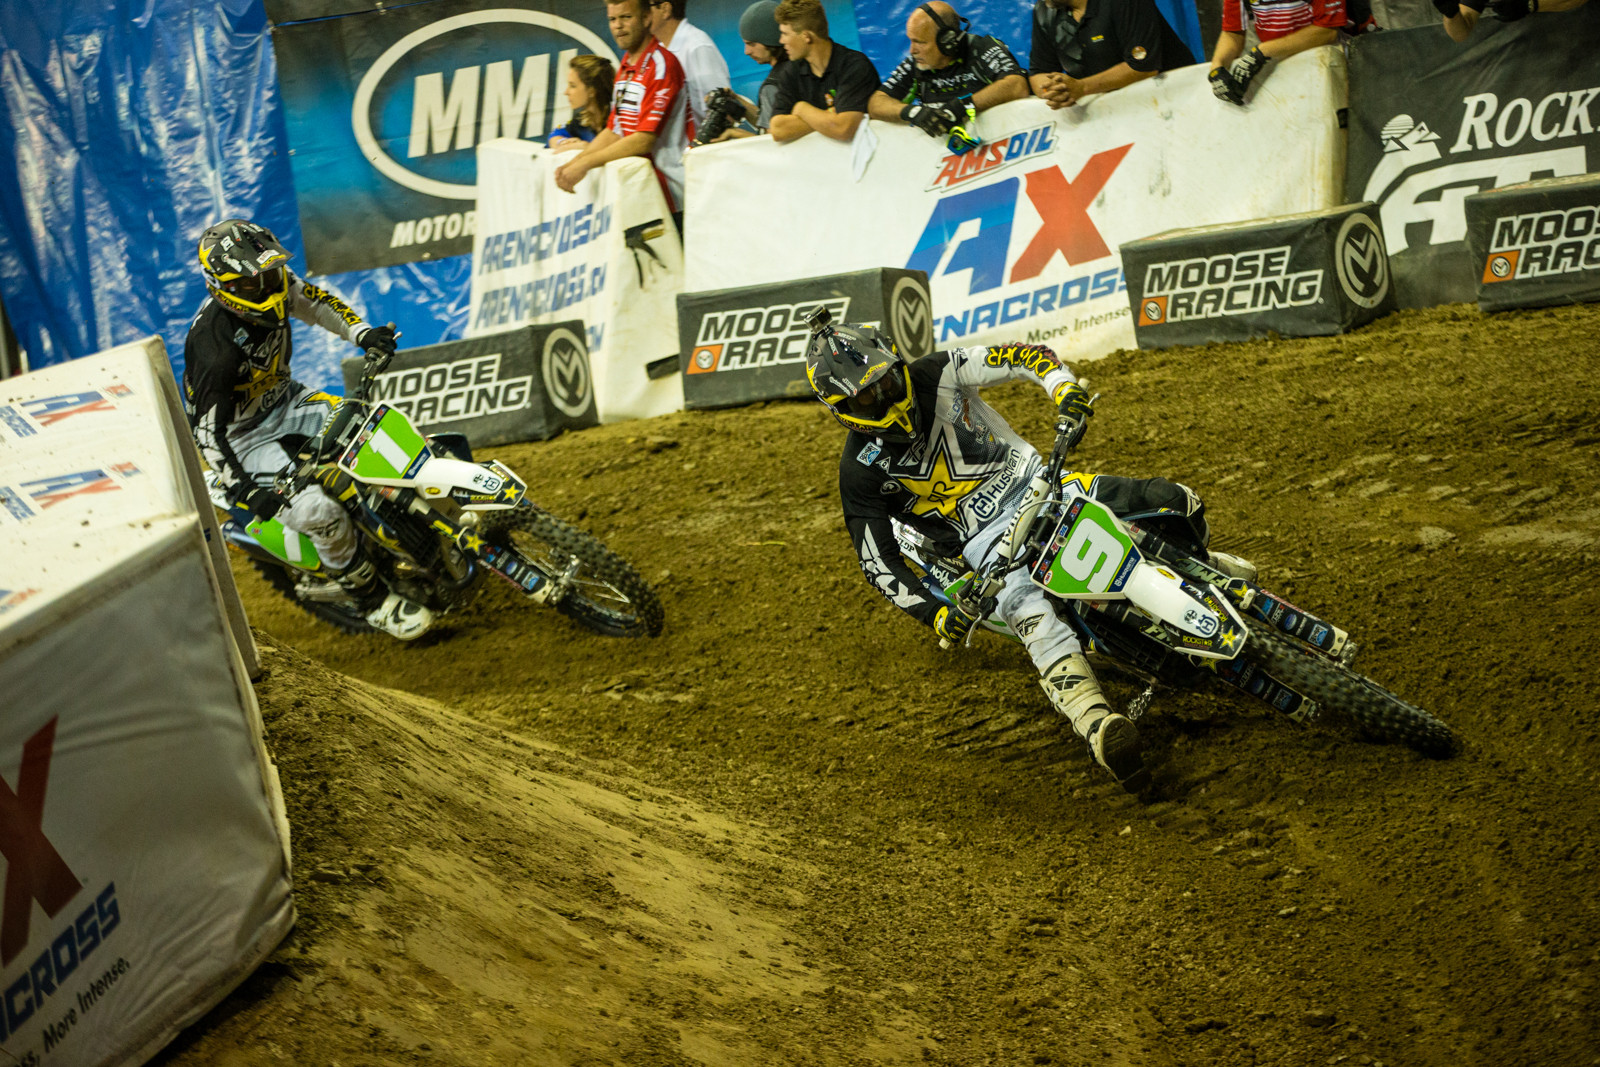 Kyle Regal and Gared Steinke - Photo Gallery: Ontario Arenacross - Saturday Night - Motocross Pictures - Vital MX